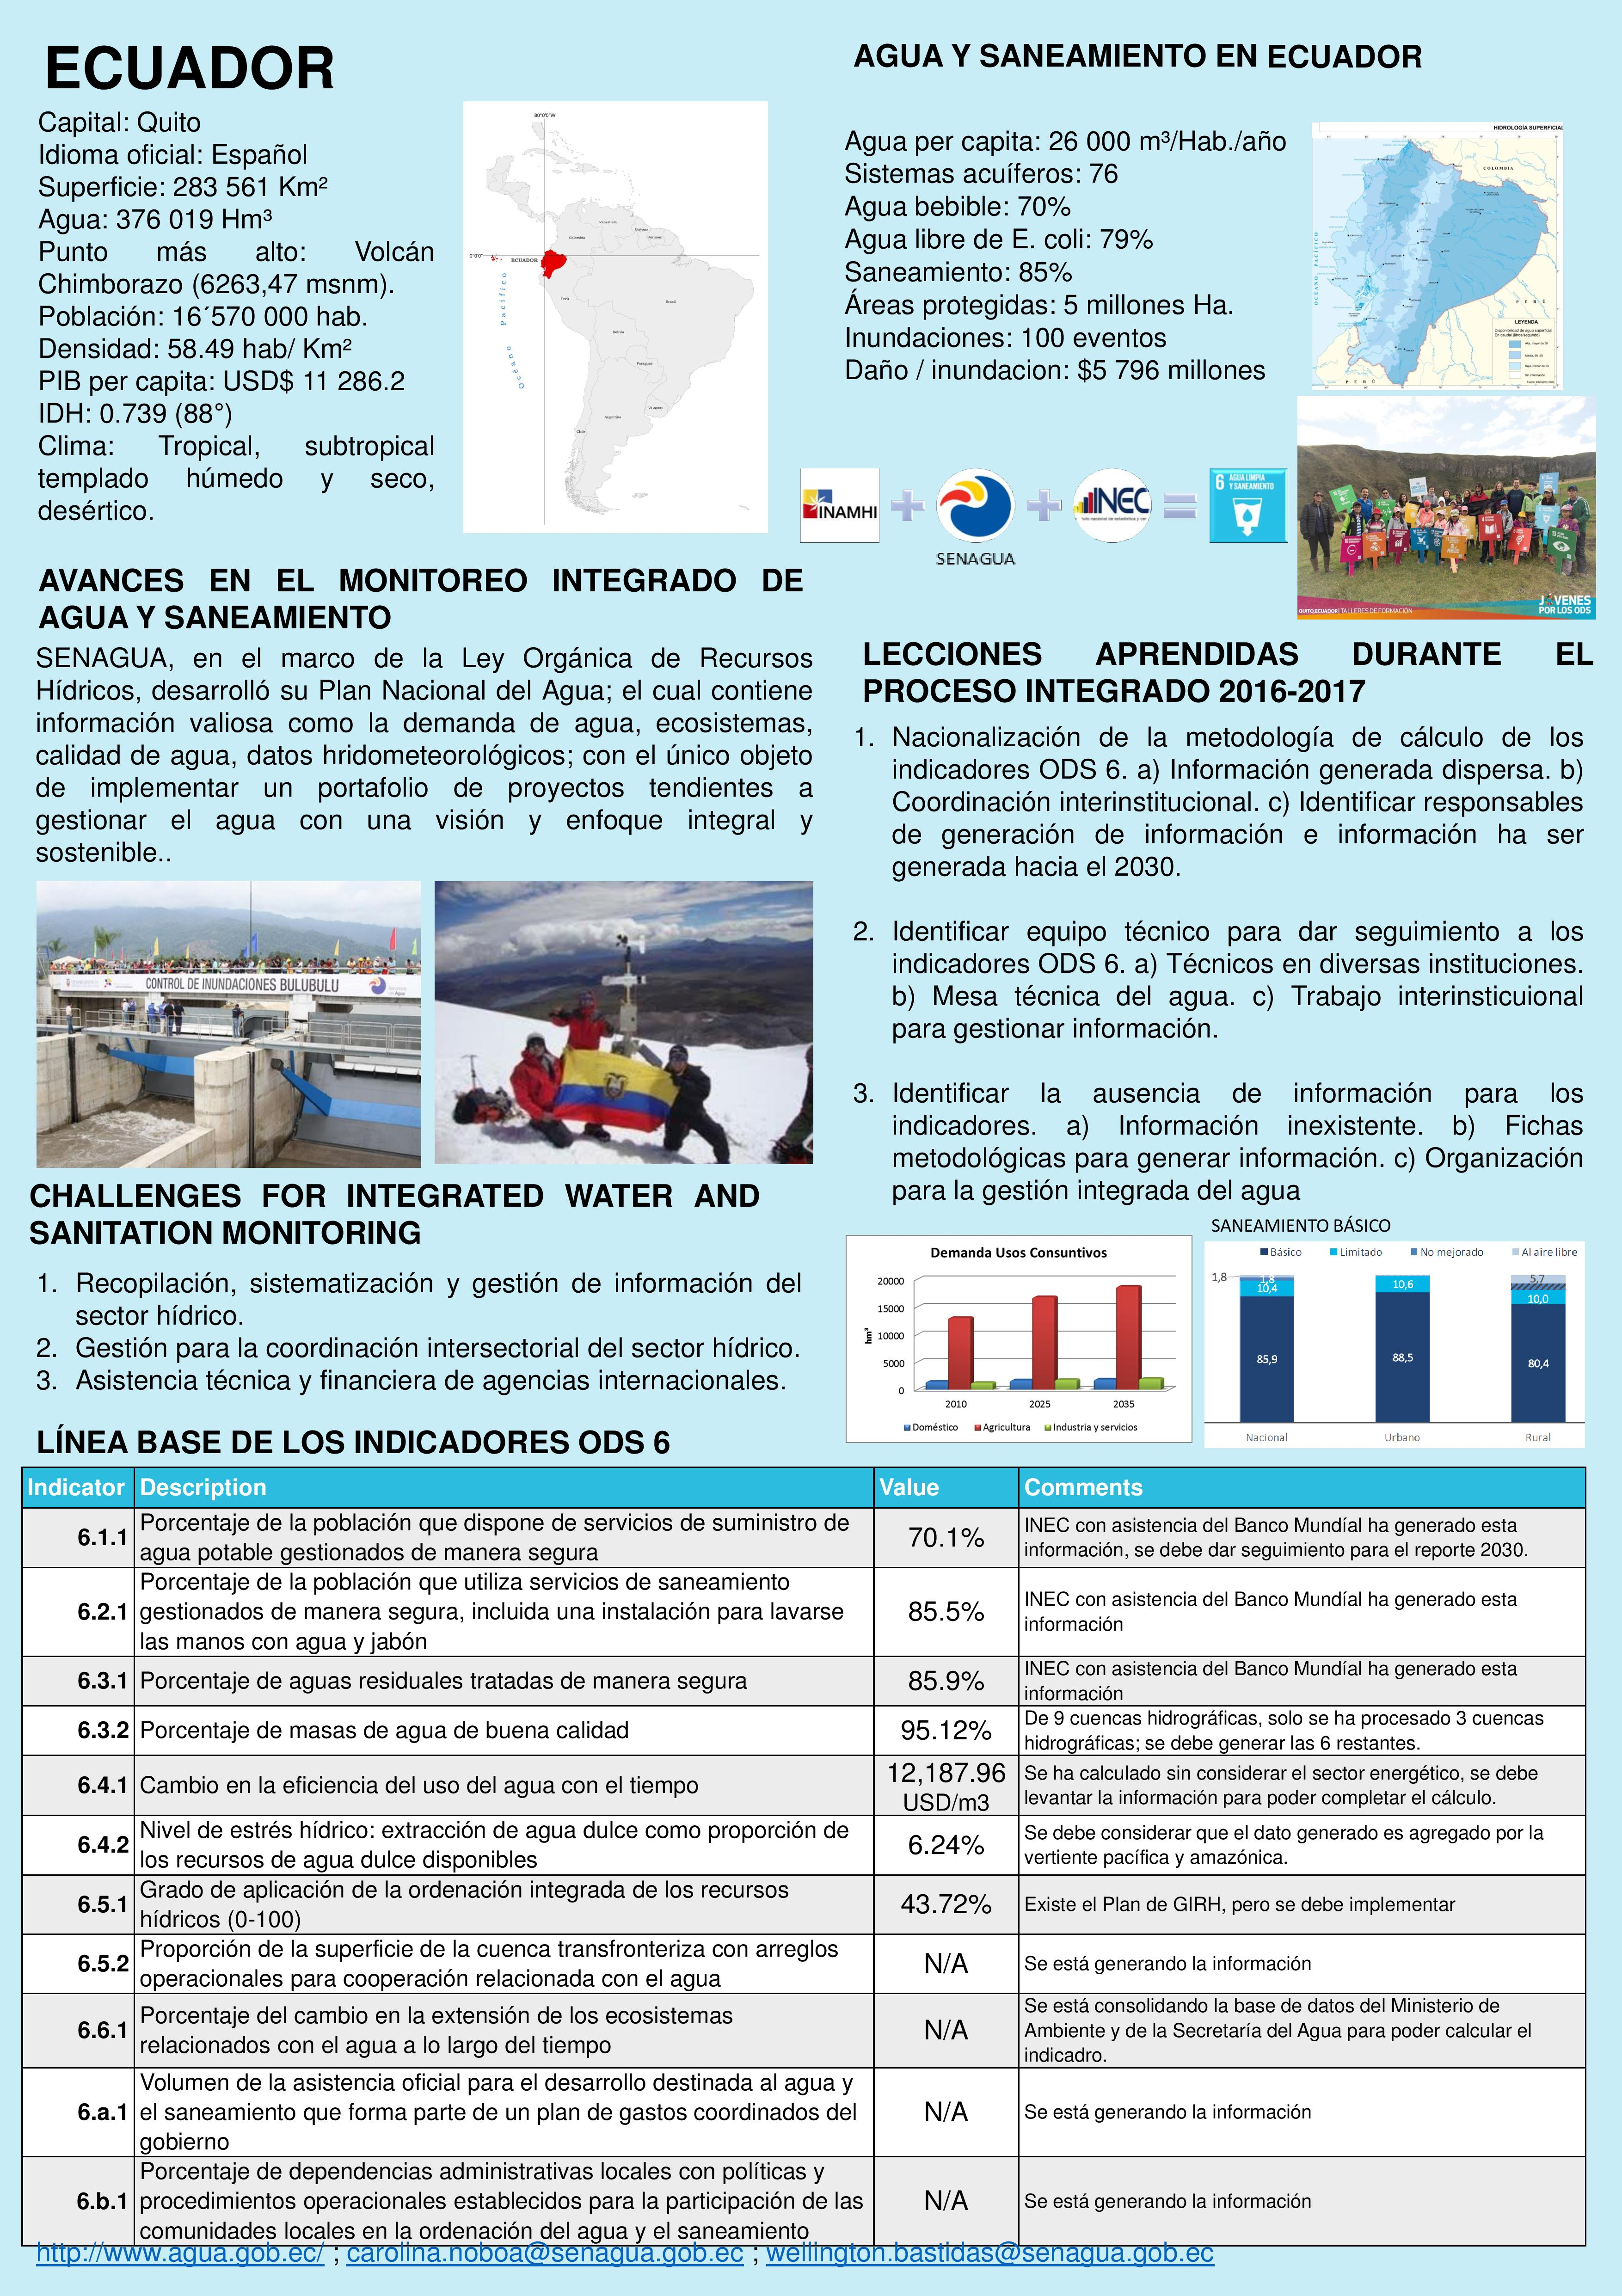 Water and saniation monitoring in Ecuador at a glance